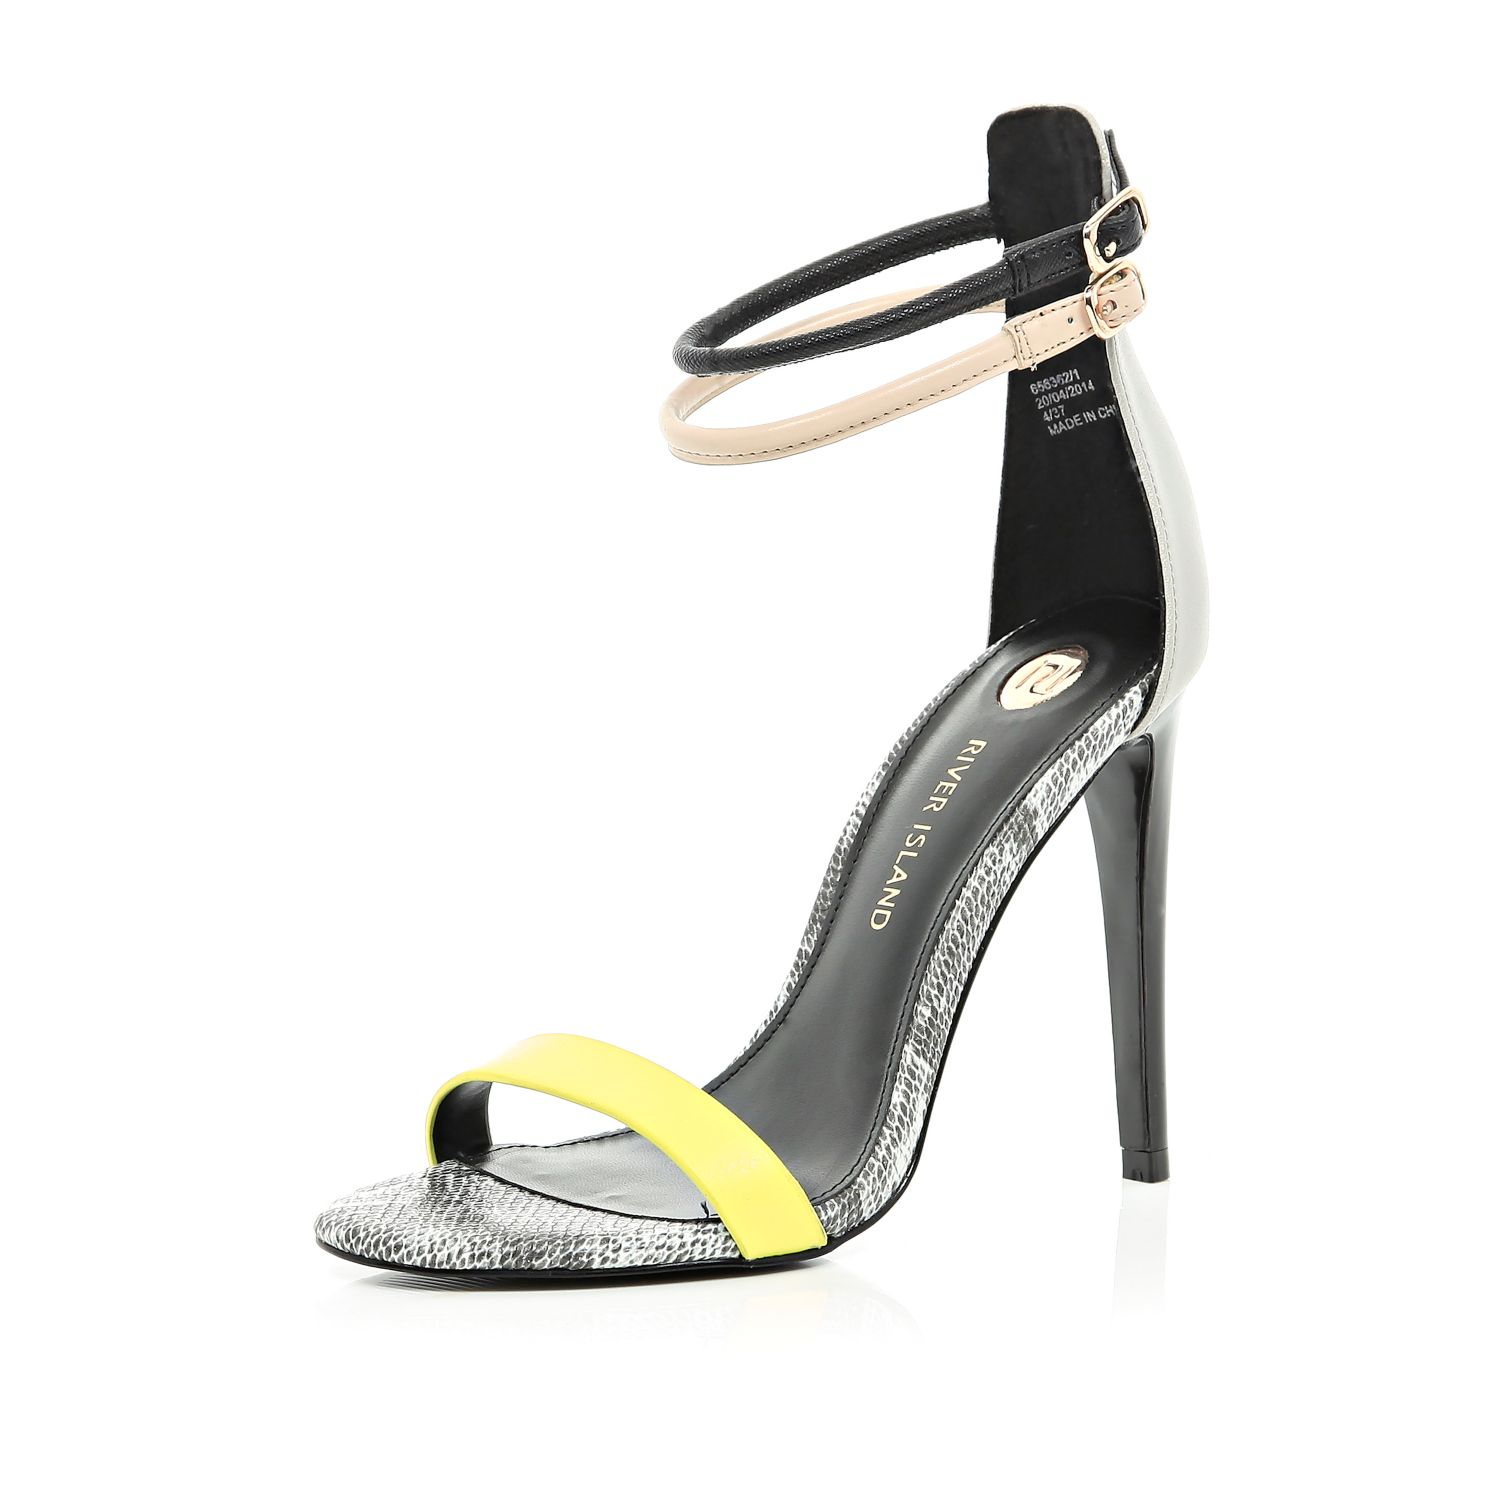 c89d43f68bc River Island Black Colour Block Barely There Sandals in Yellow - Lyst